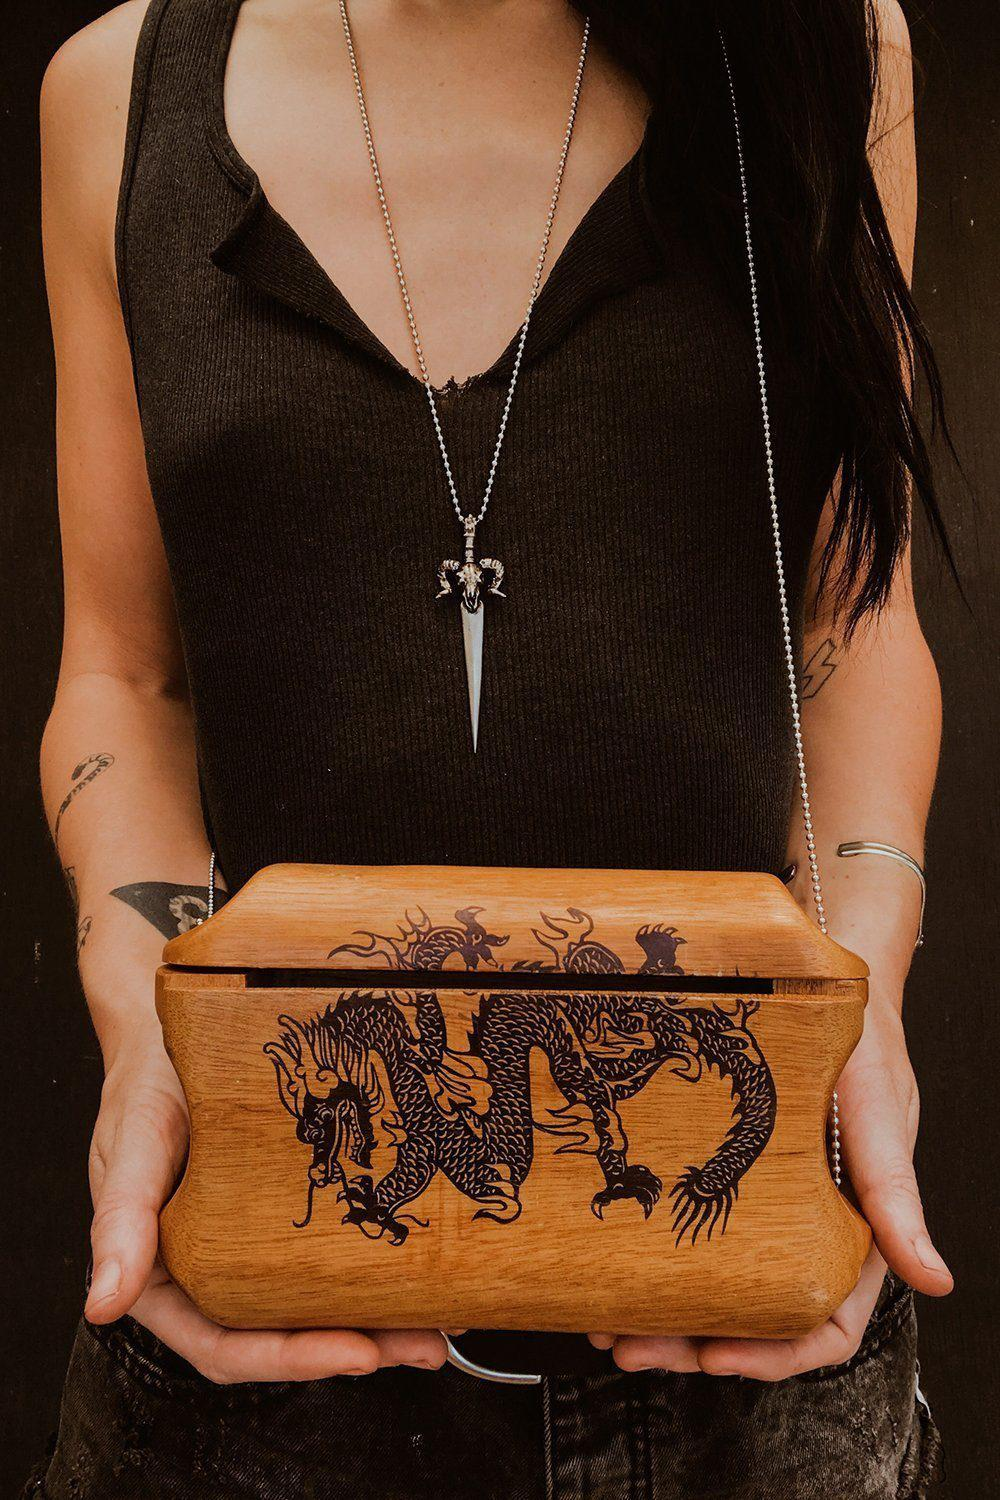 Amazing Vintage Wood Dragon Purse with Ball Chain Strap, Accessories, BACKBITE, BACKBITE